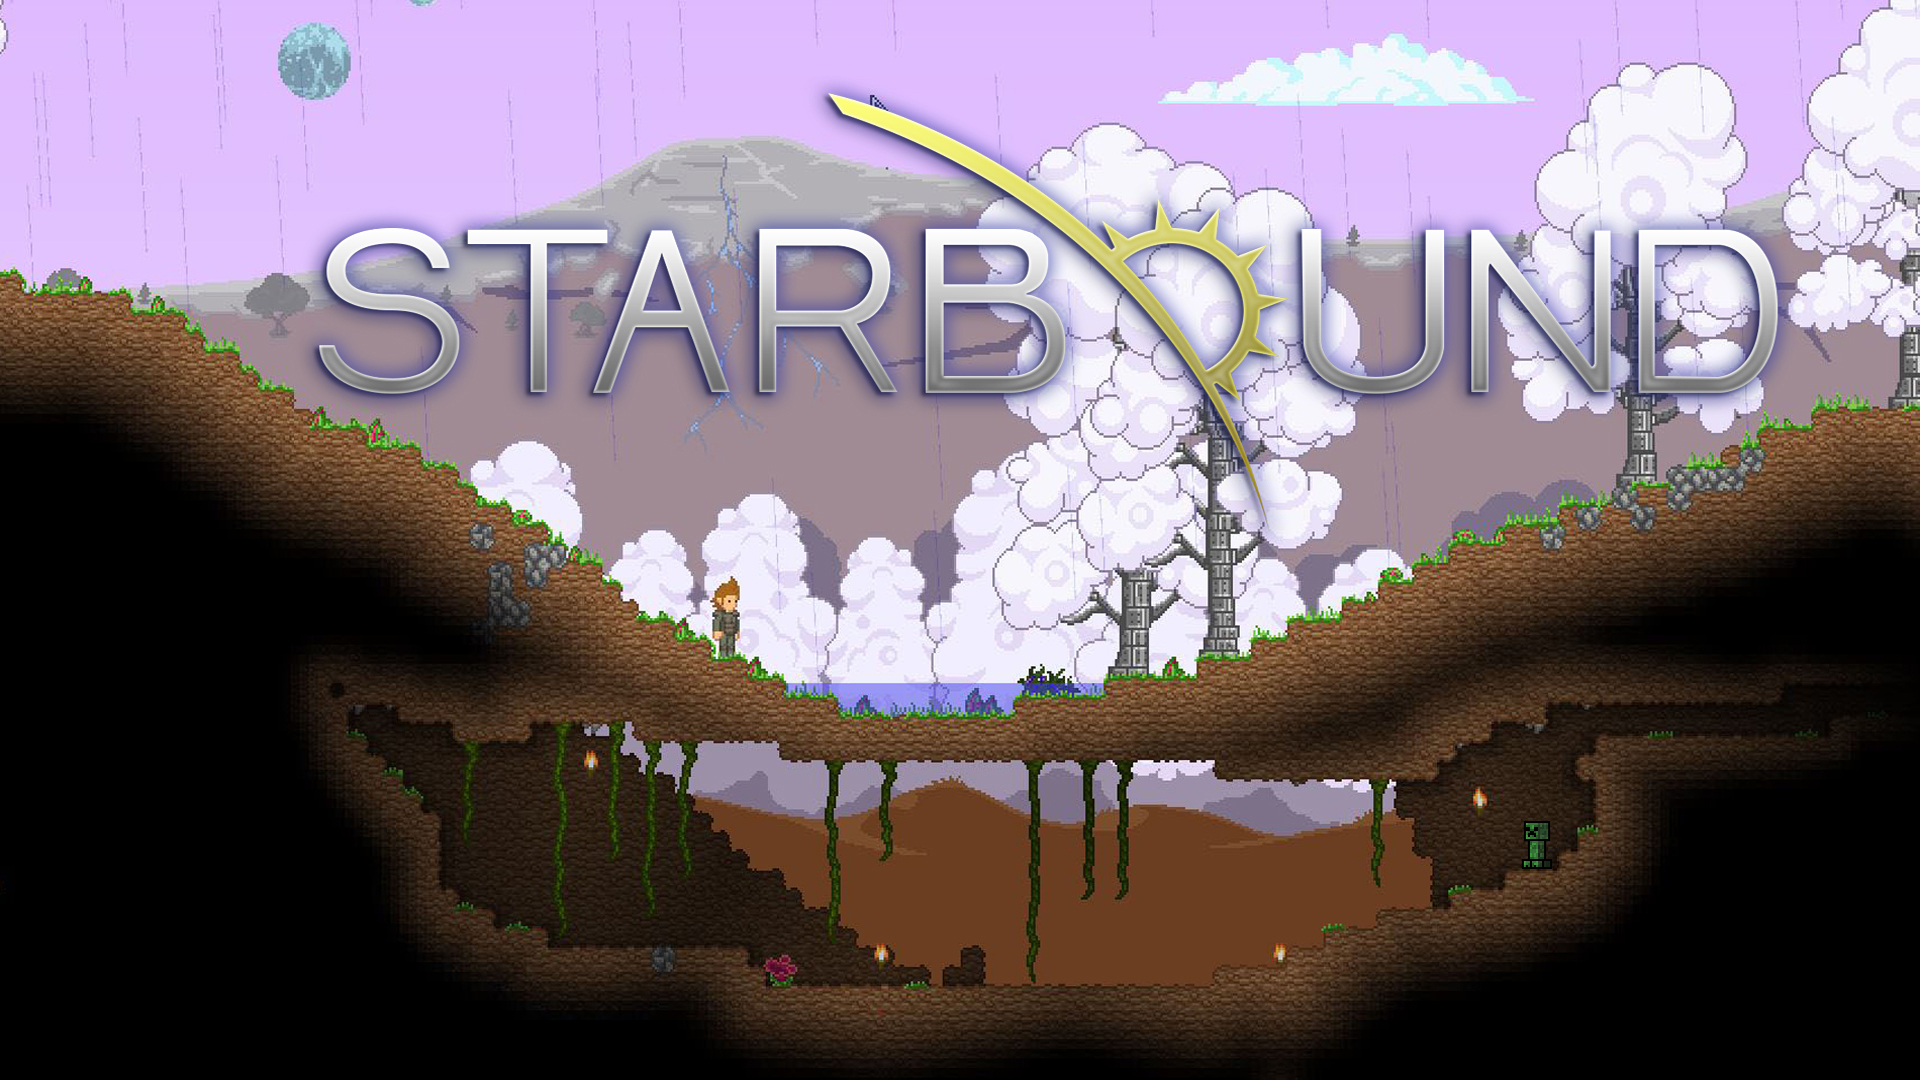 Hd Wallpaper 2014 Steam Community Simple Starbound Wallpaper